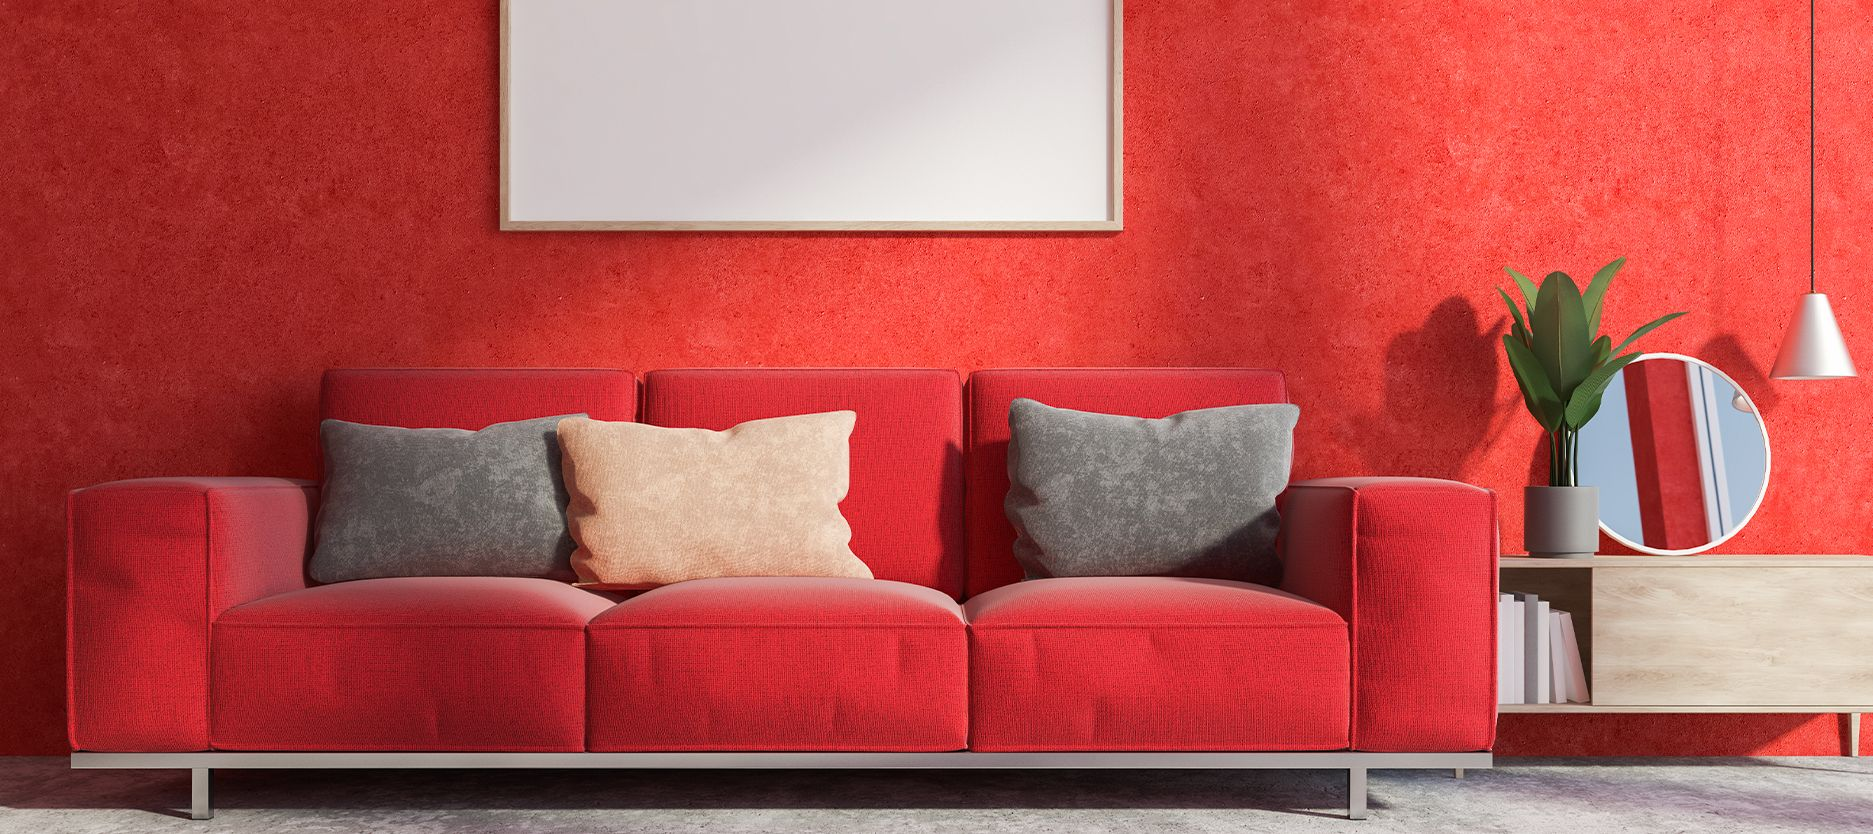 5 Different Shades of Red Wall Paint Colour for Your Home